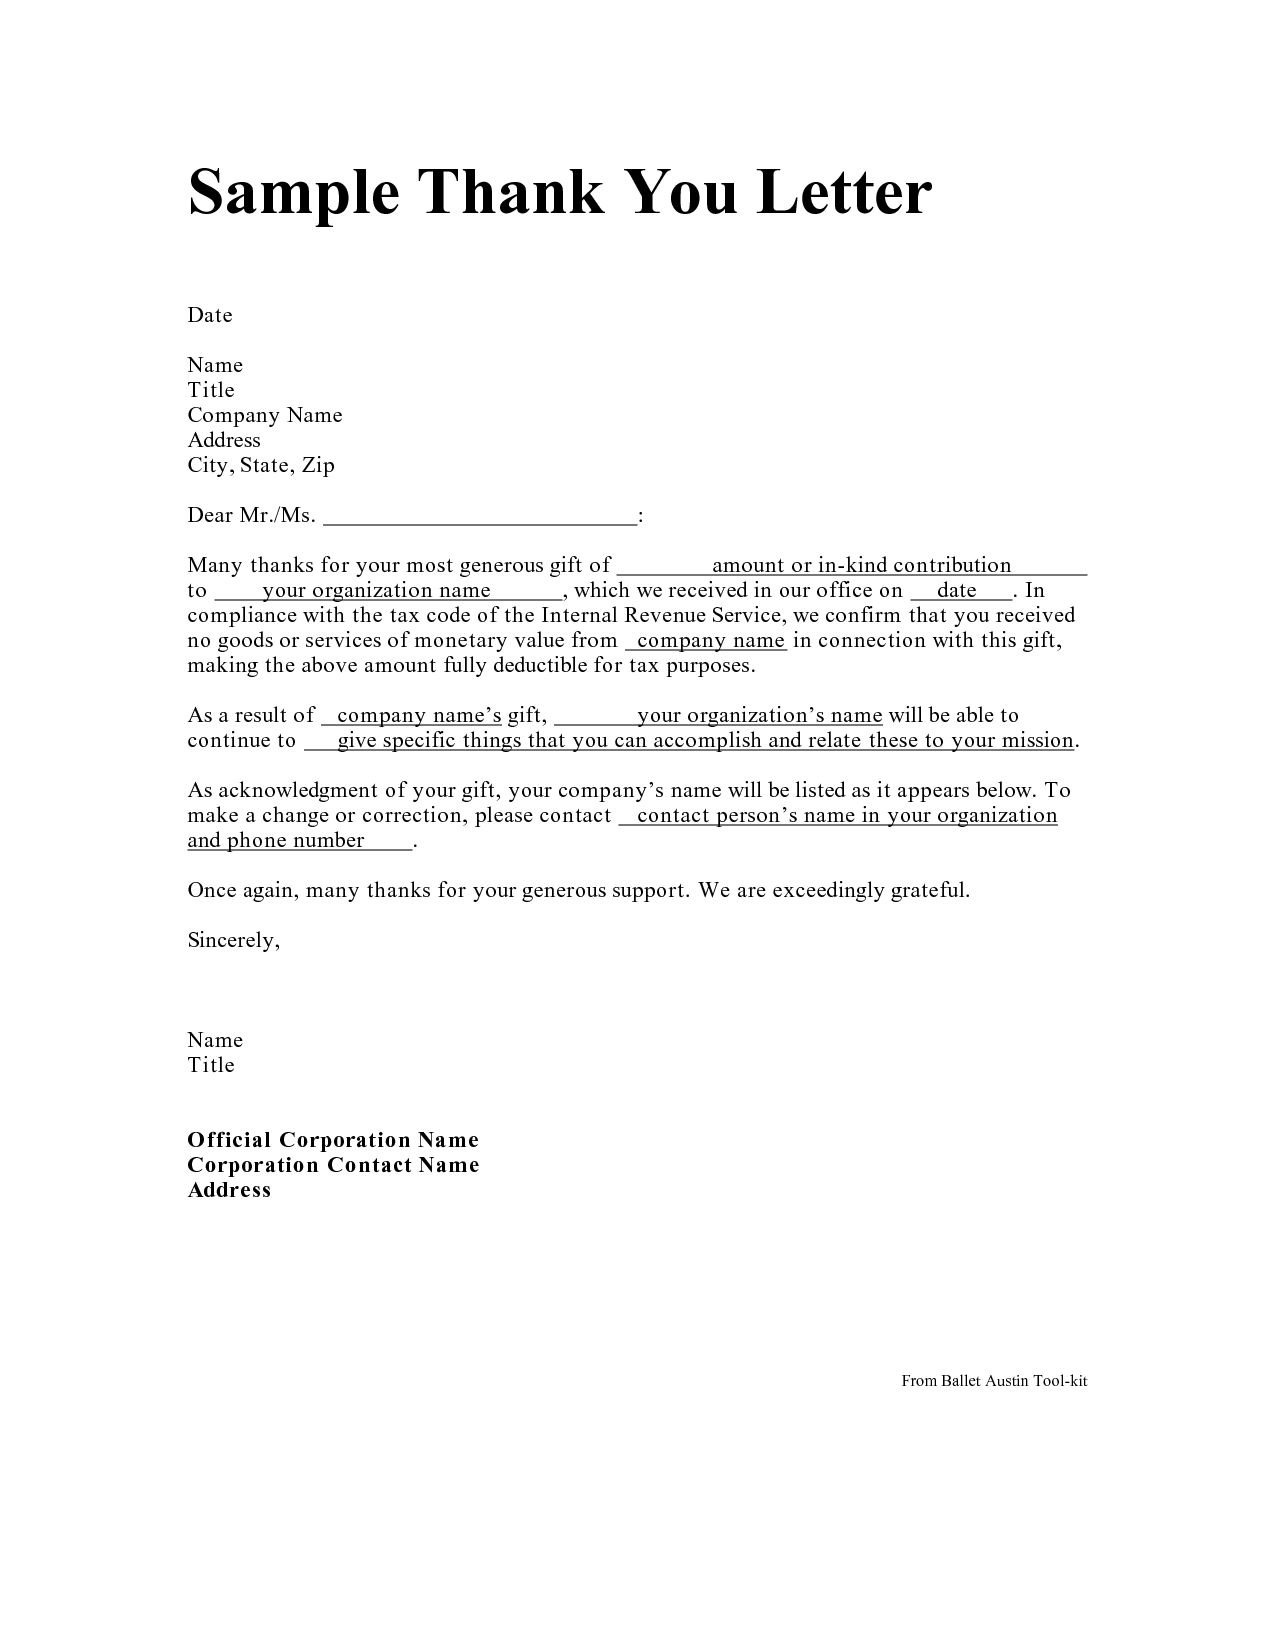 Fundraising Letter Template - Personal Thank You Letter Personal Thank You Letter Samples